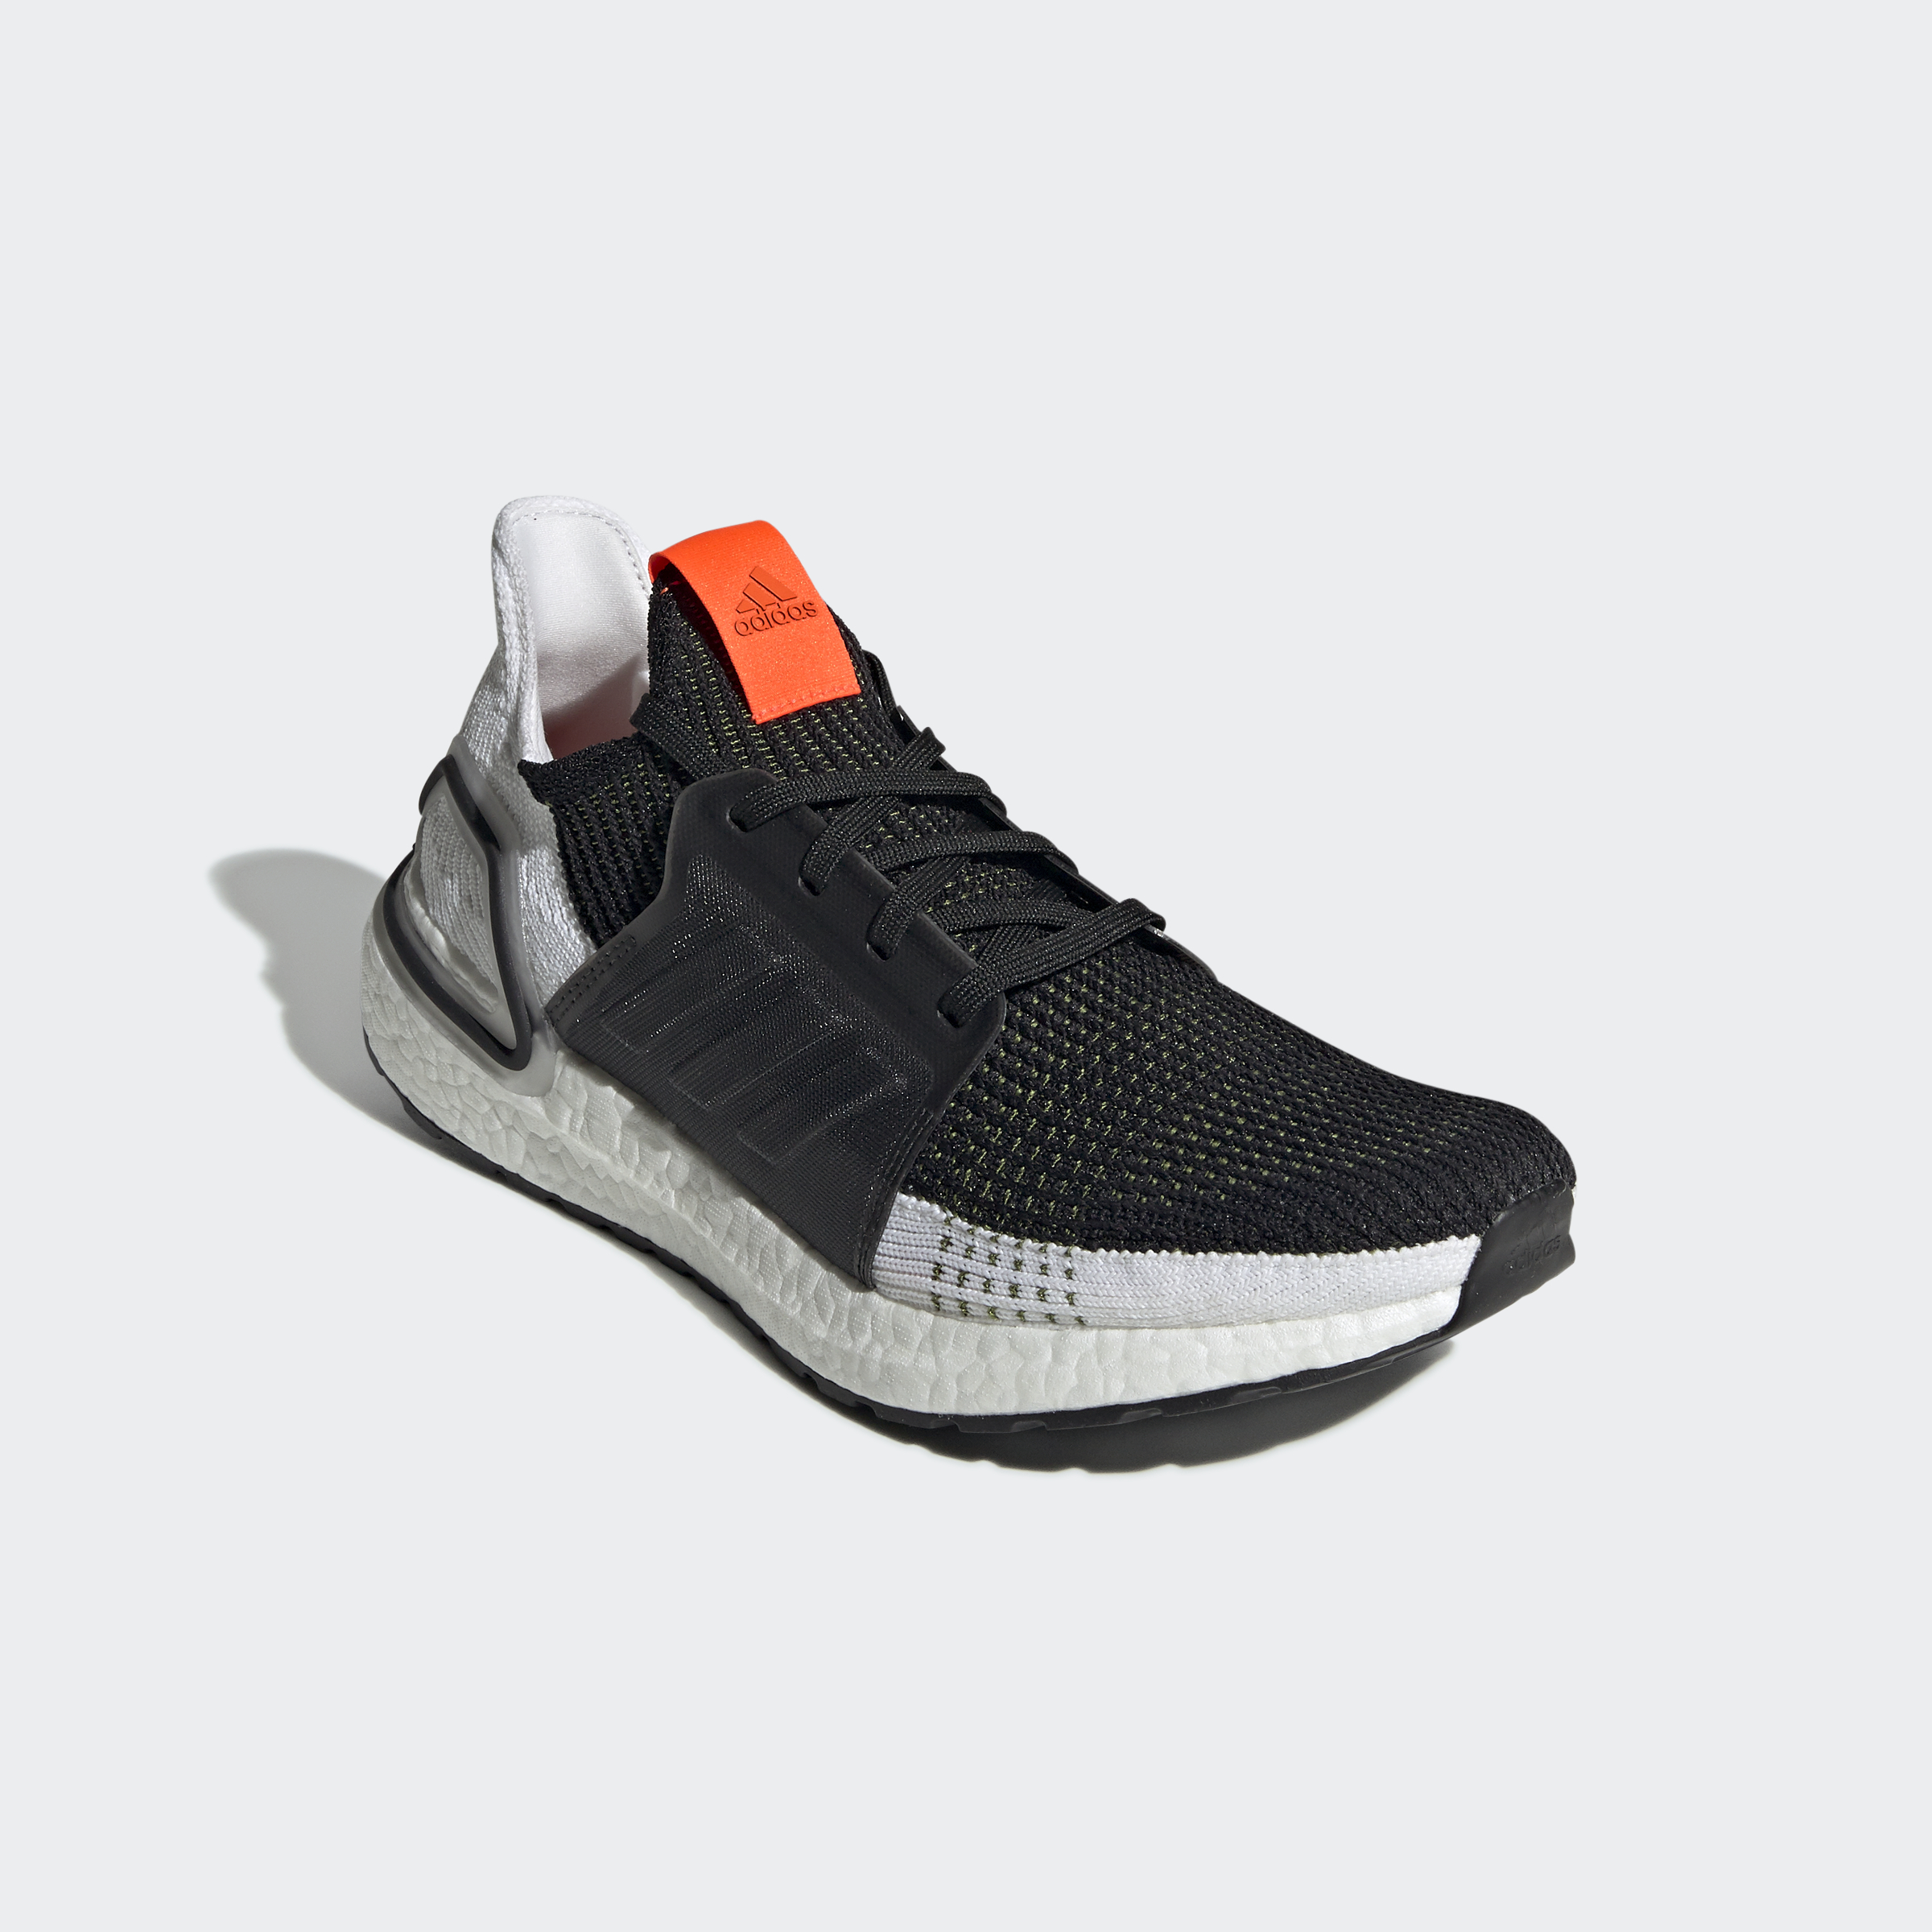 adidas-Ultraboost-19-Shoes-Athletic-amp-Sneakers thumbnail 60